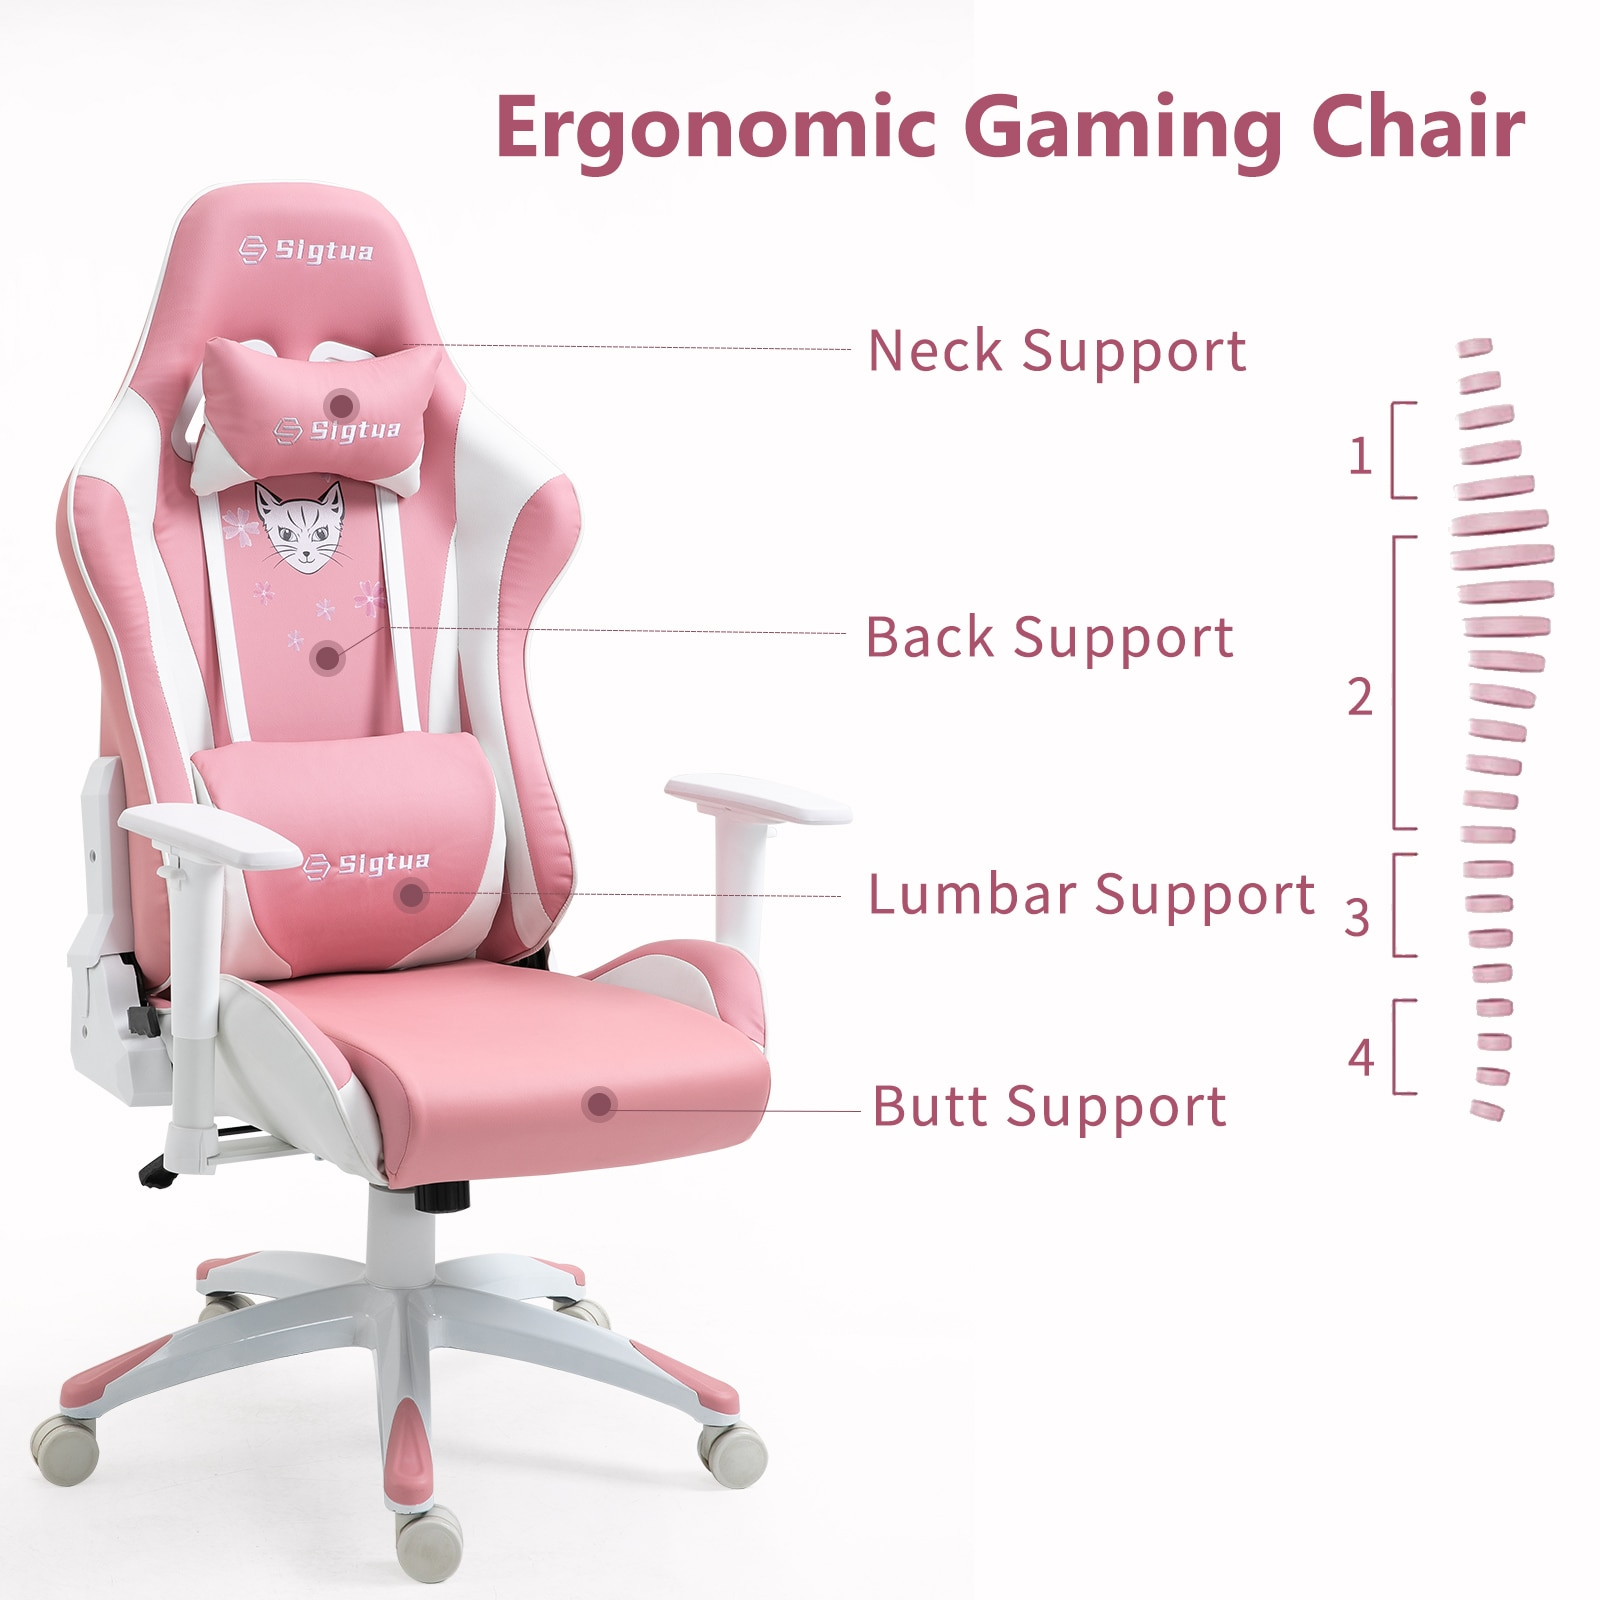 Hf9e694b15cb5446fb7be0f6901b00954z - Sigtua Pink Gaming Office Chair Height-adjustable Armrests Computer Chair Ergonomic Swivel Executive Chair with High Backrest